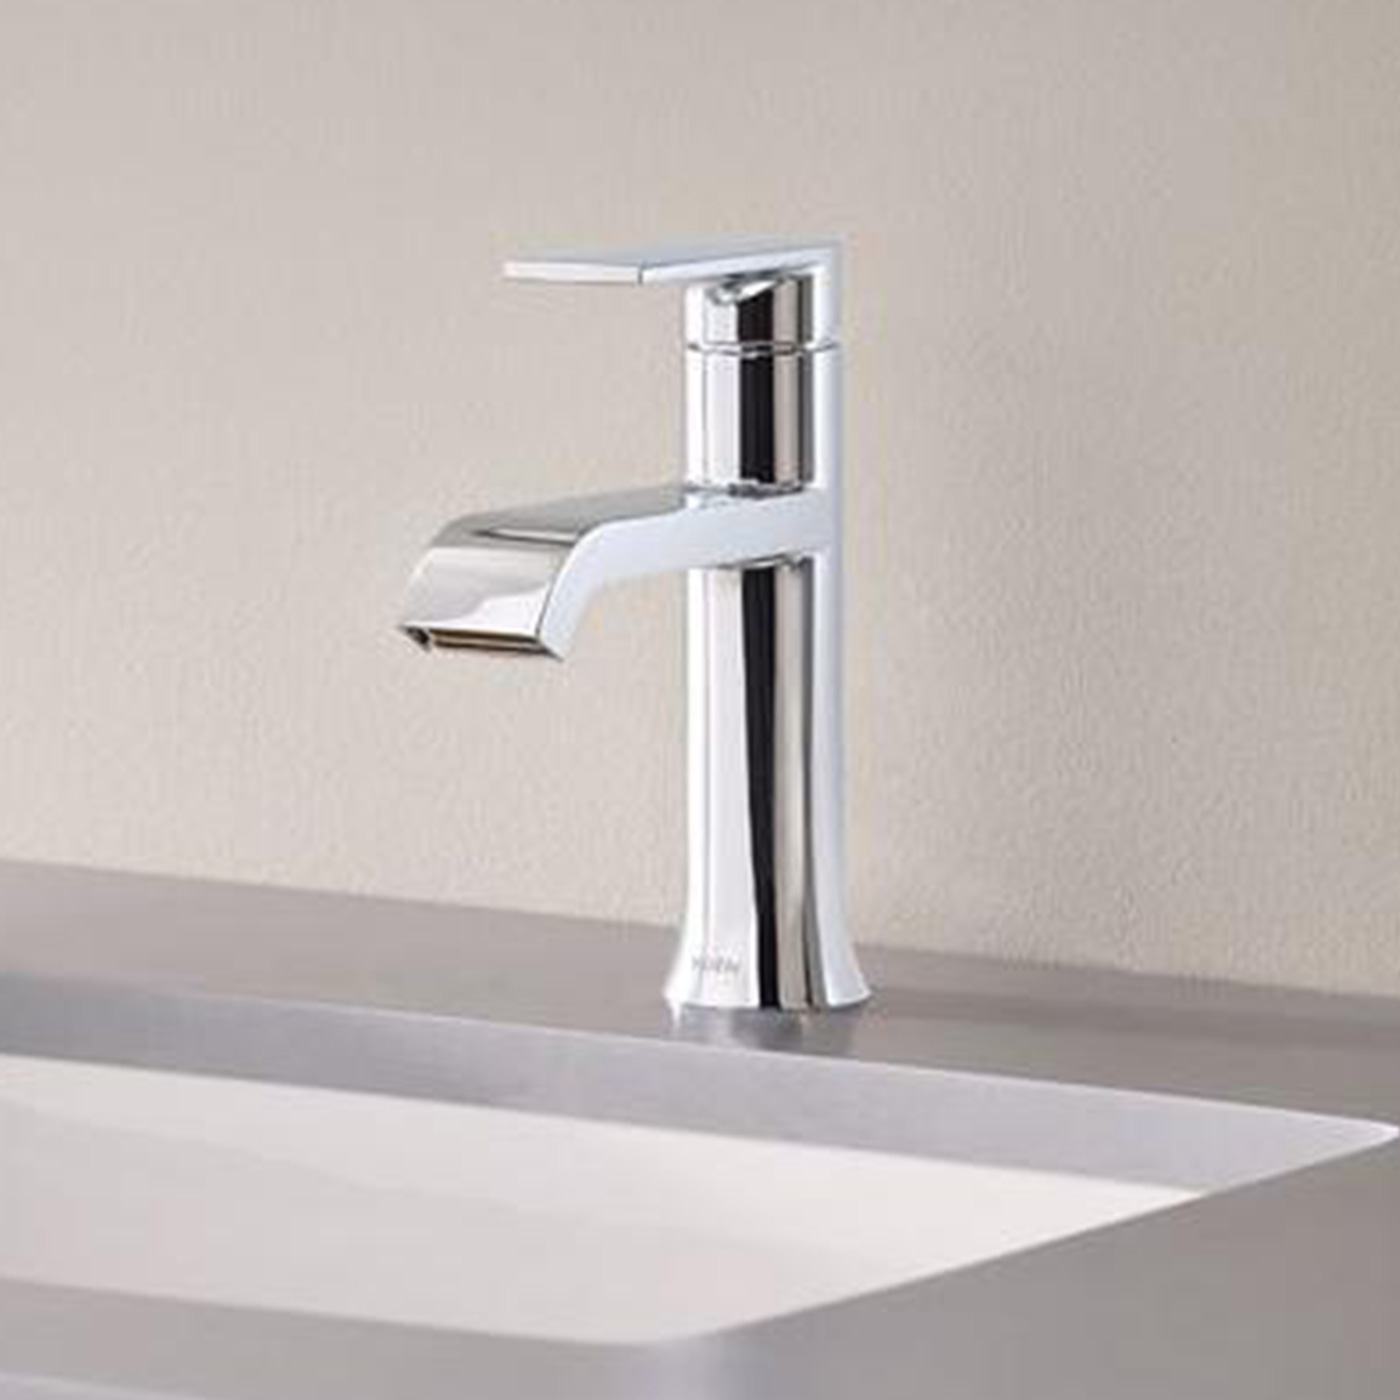 Bathroom faucets for your sink shower head and bathtub for Plumbing bathroom sink